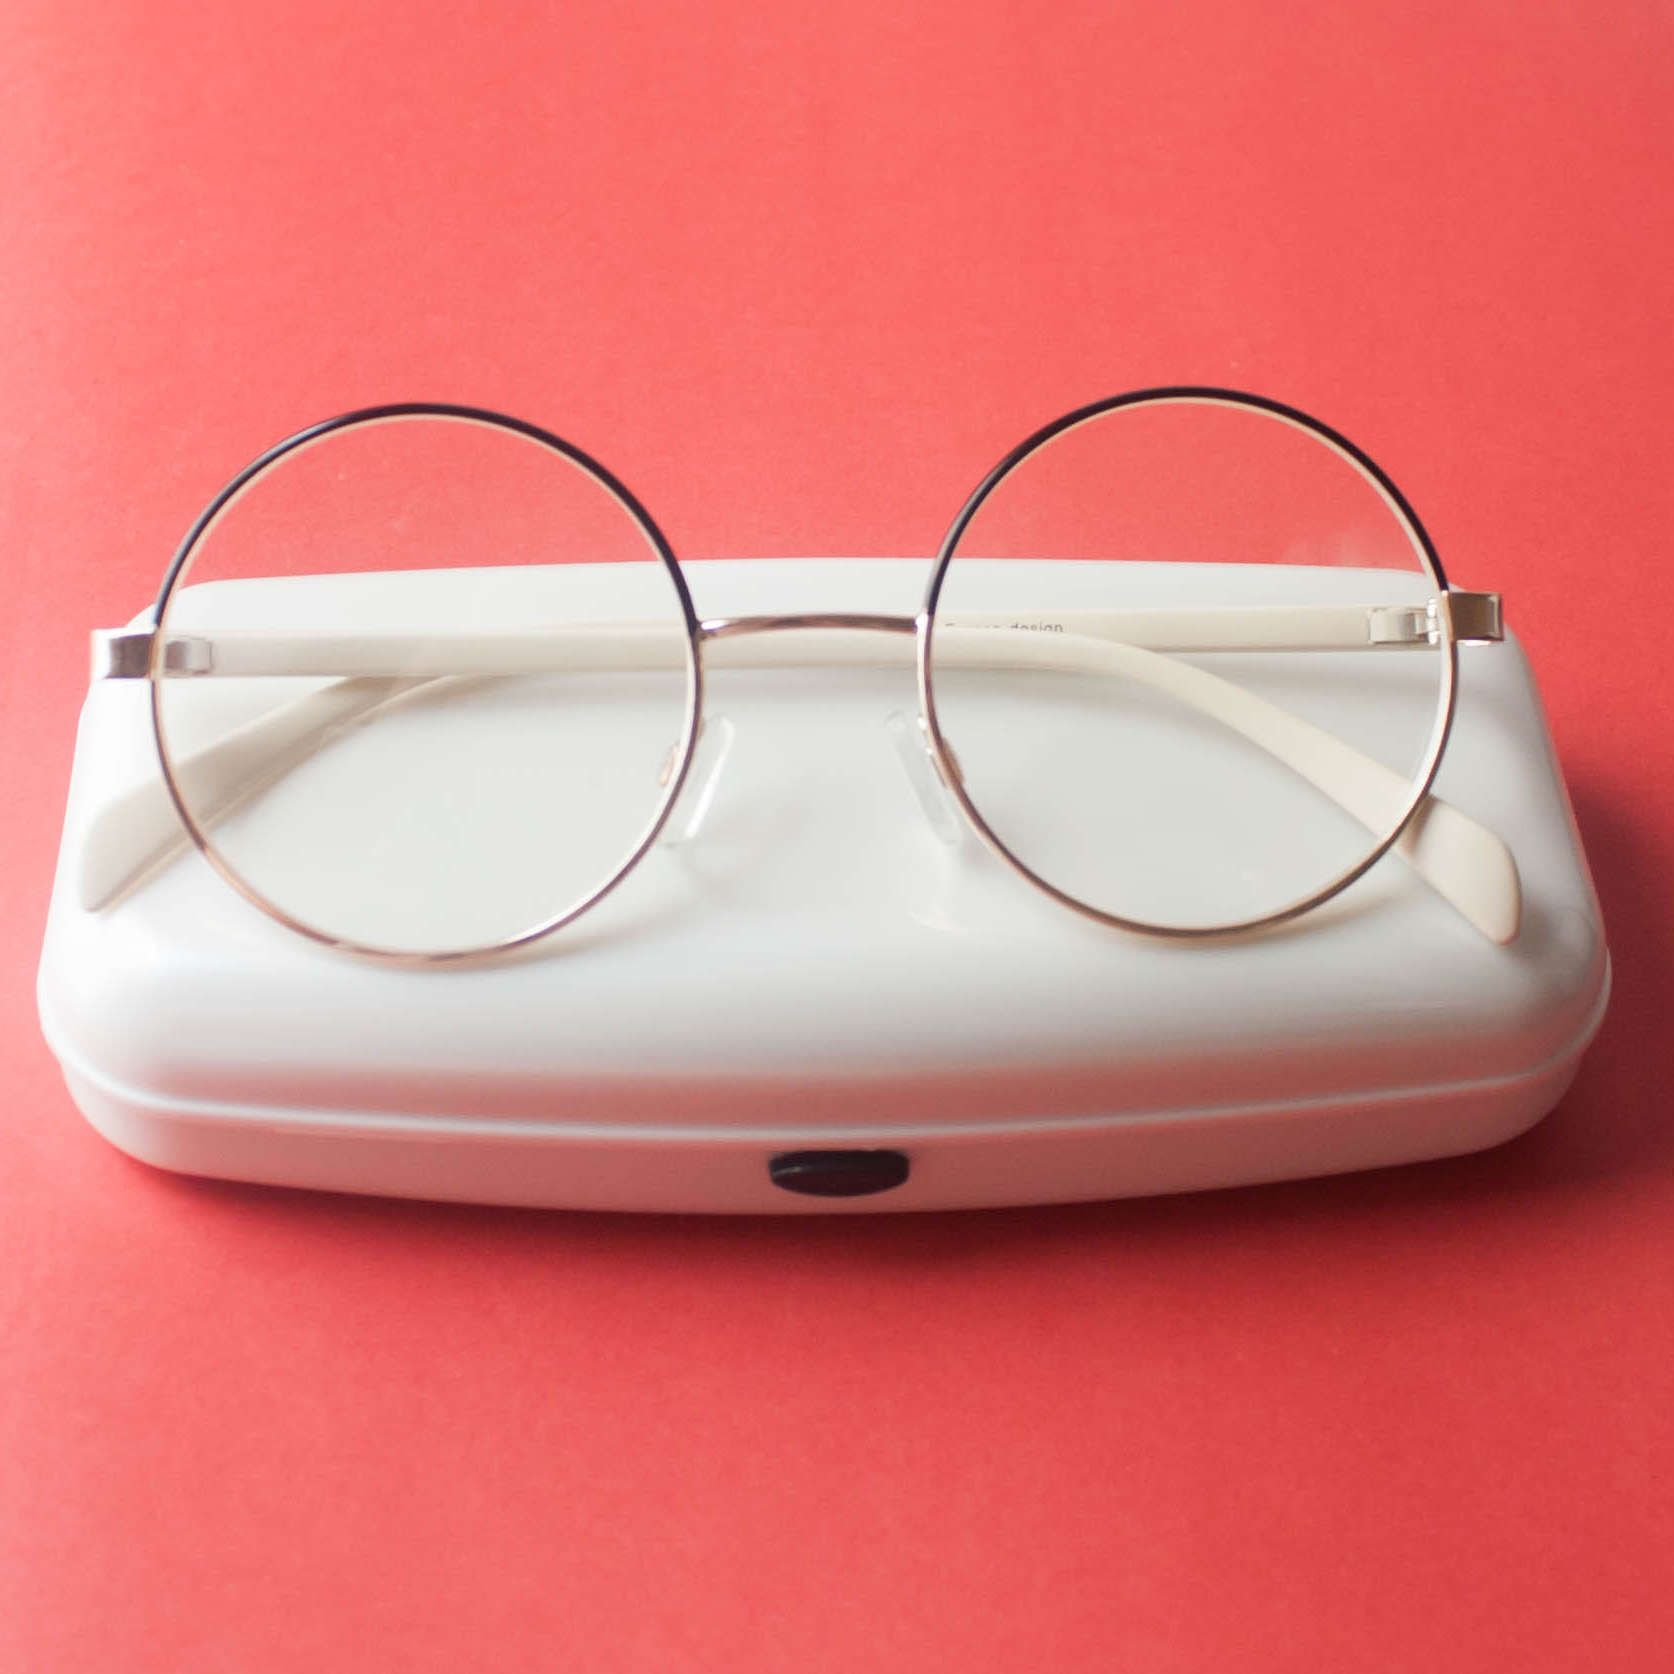 óculos REDONDO   SPECKS   Pinterest   Glasses, Eyewear and Eyeglasses 7645d0b186